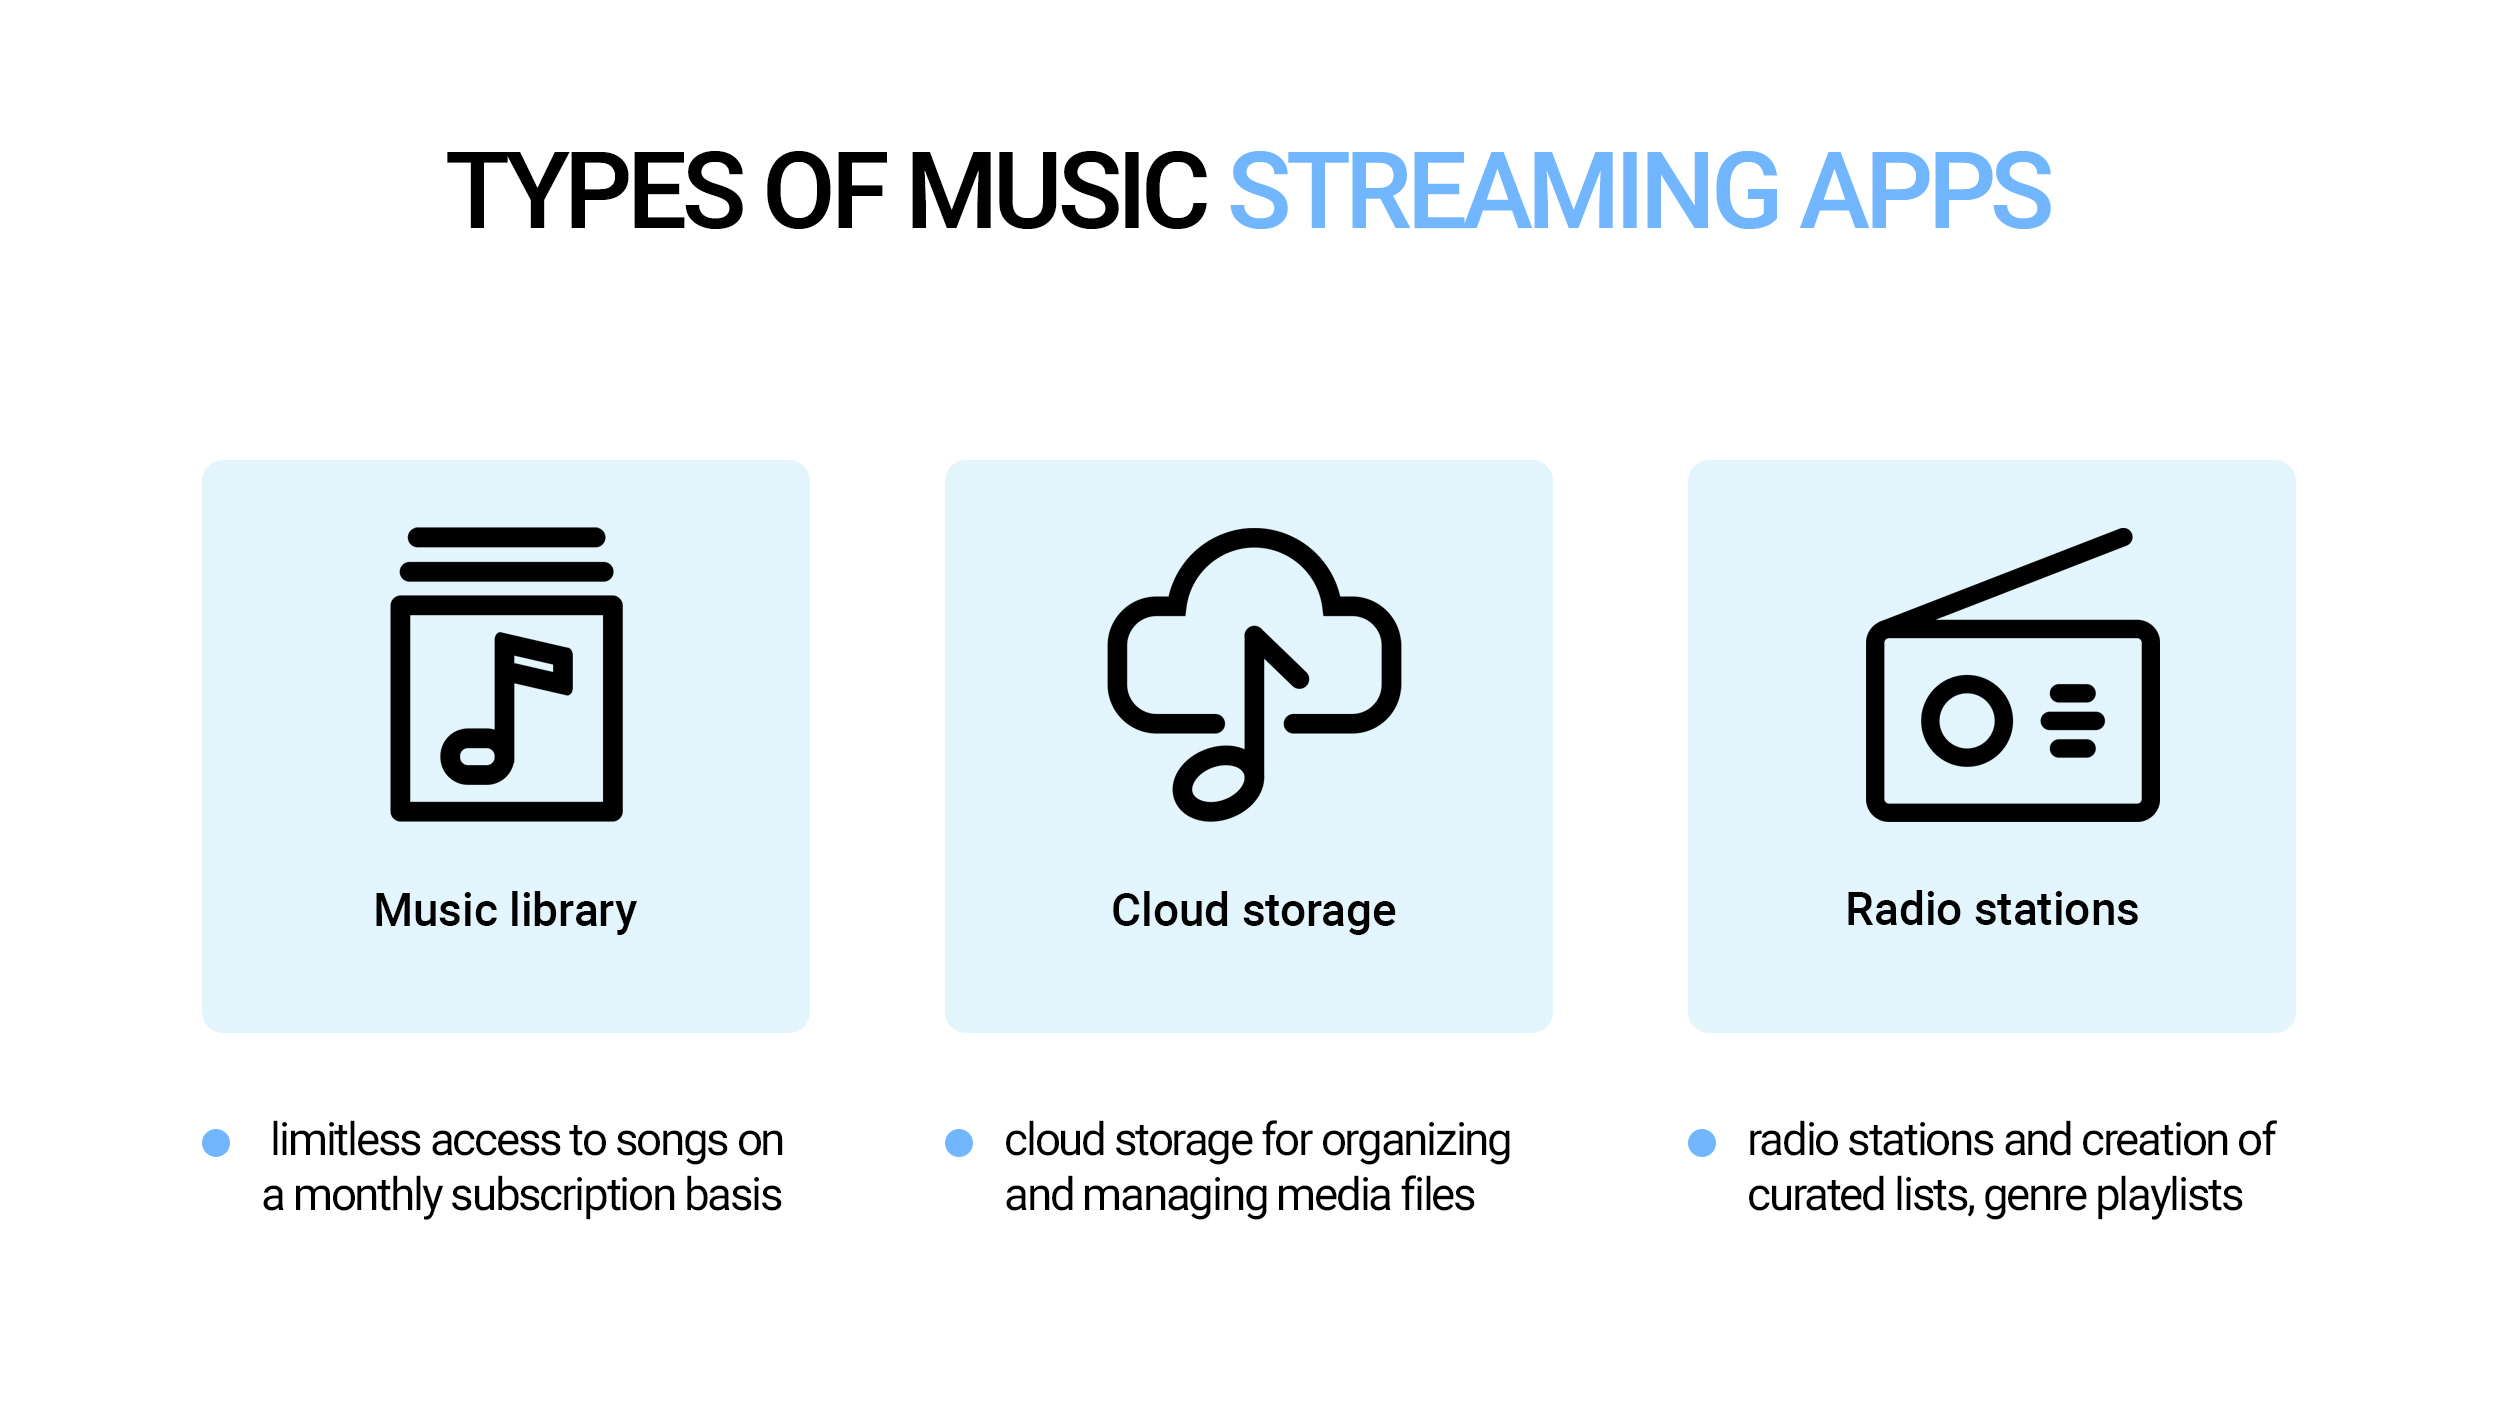 Types of music streaming apps